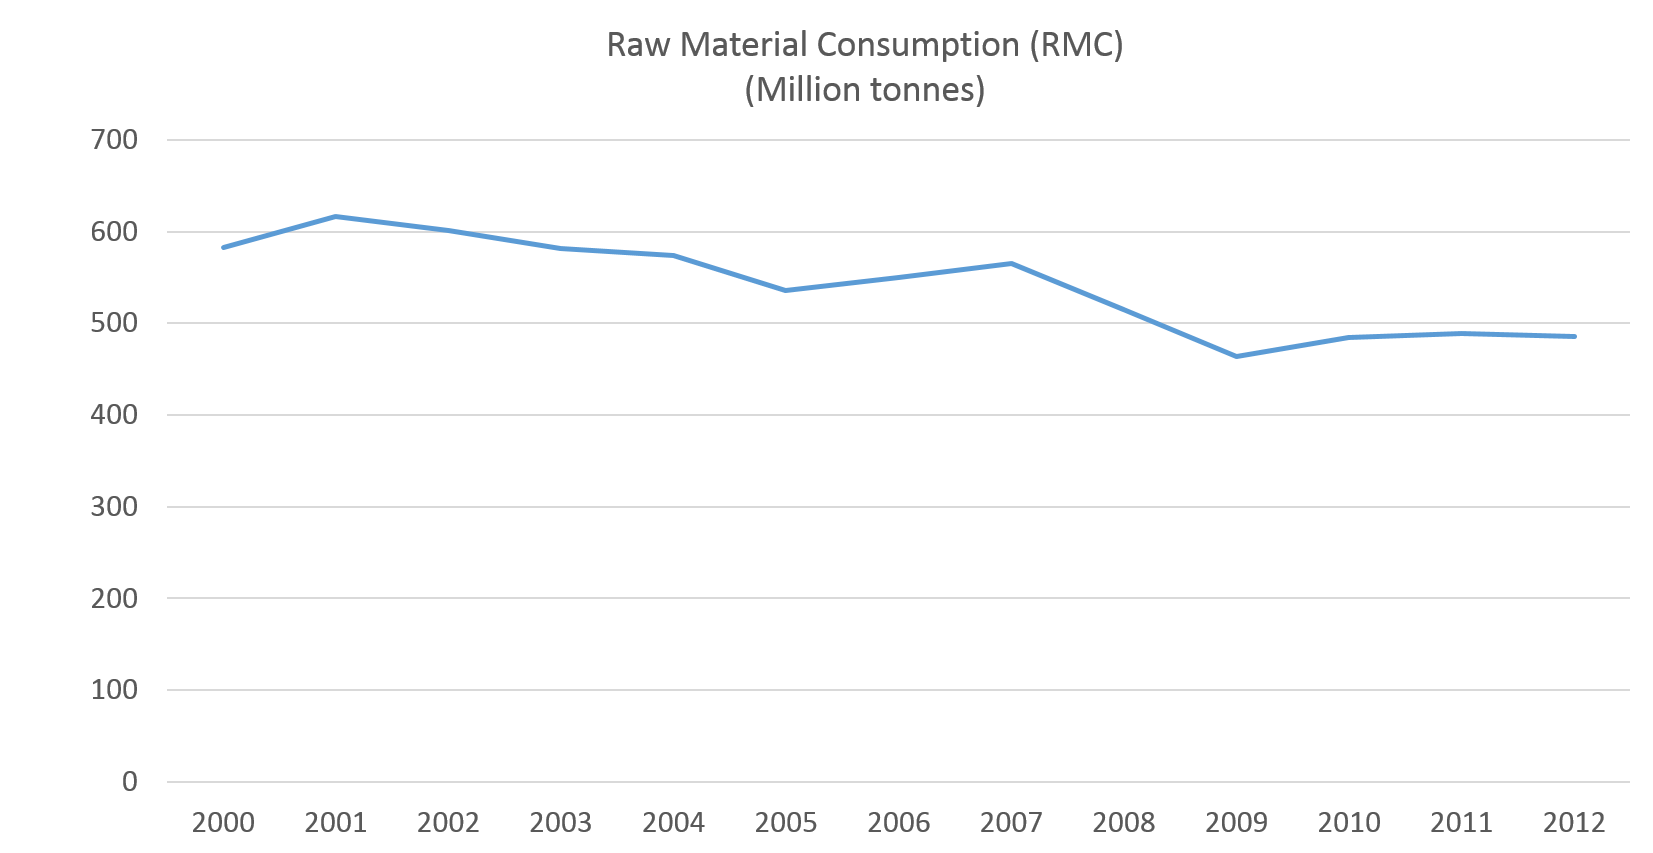 Raw material consumption